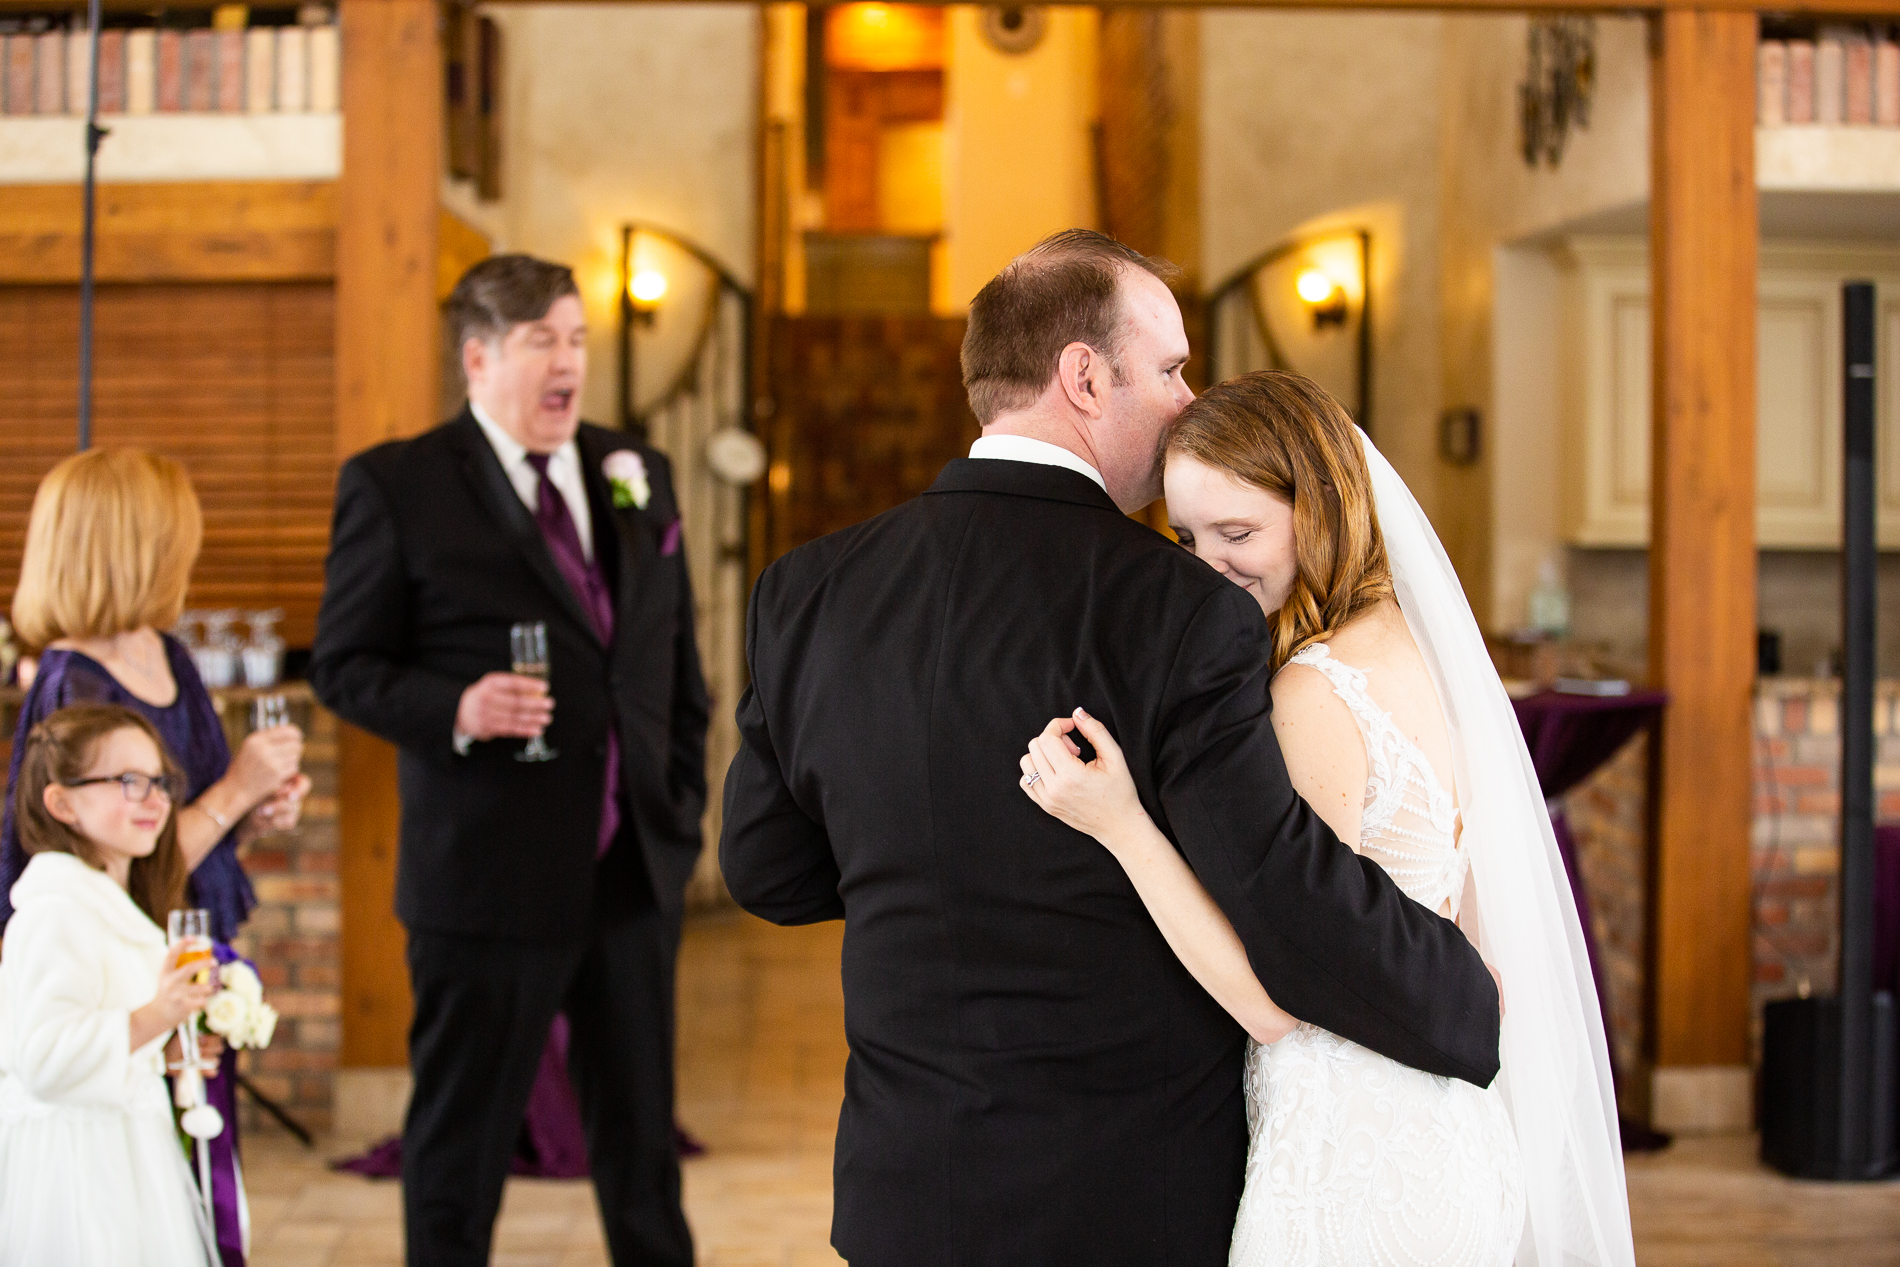 Estes Park Small Wedding Winter Pictures | the couple embrace during his best man's toast